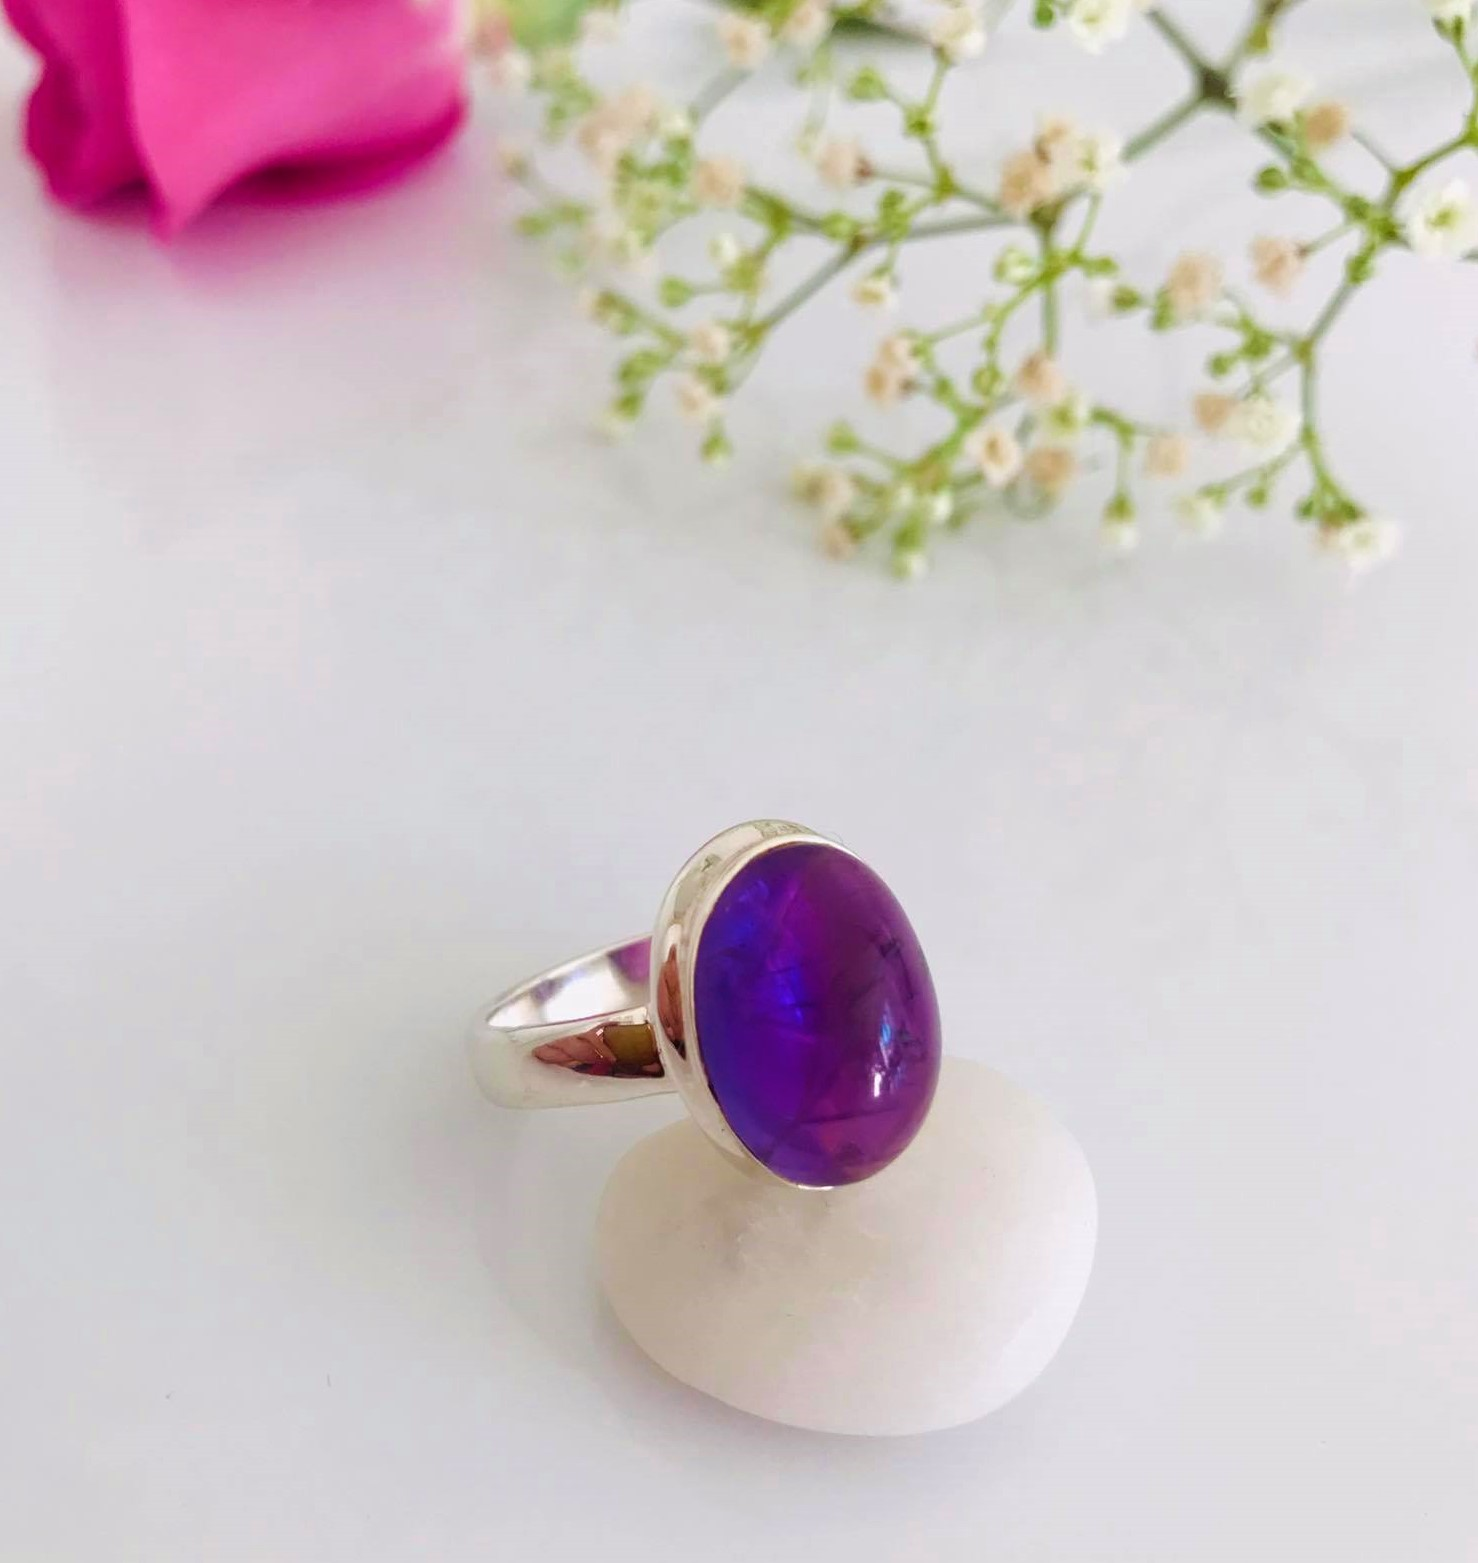 Amethyst set in Sterling Silver Ring Image